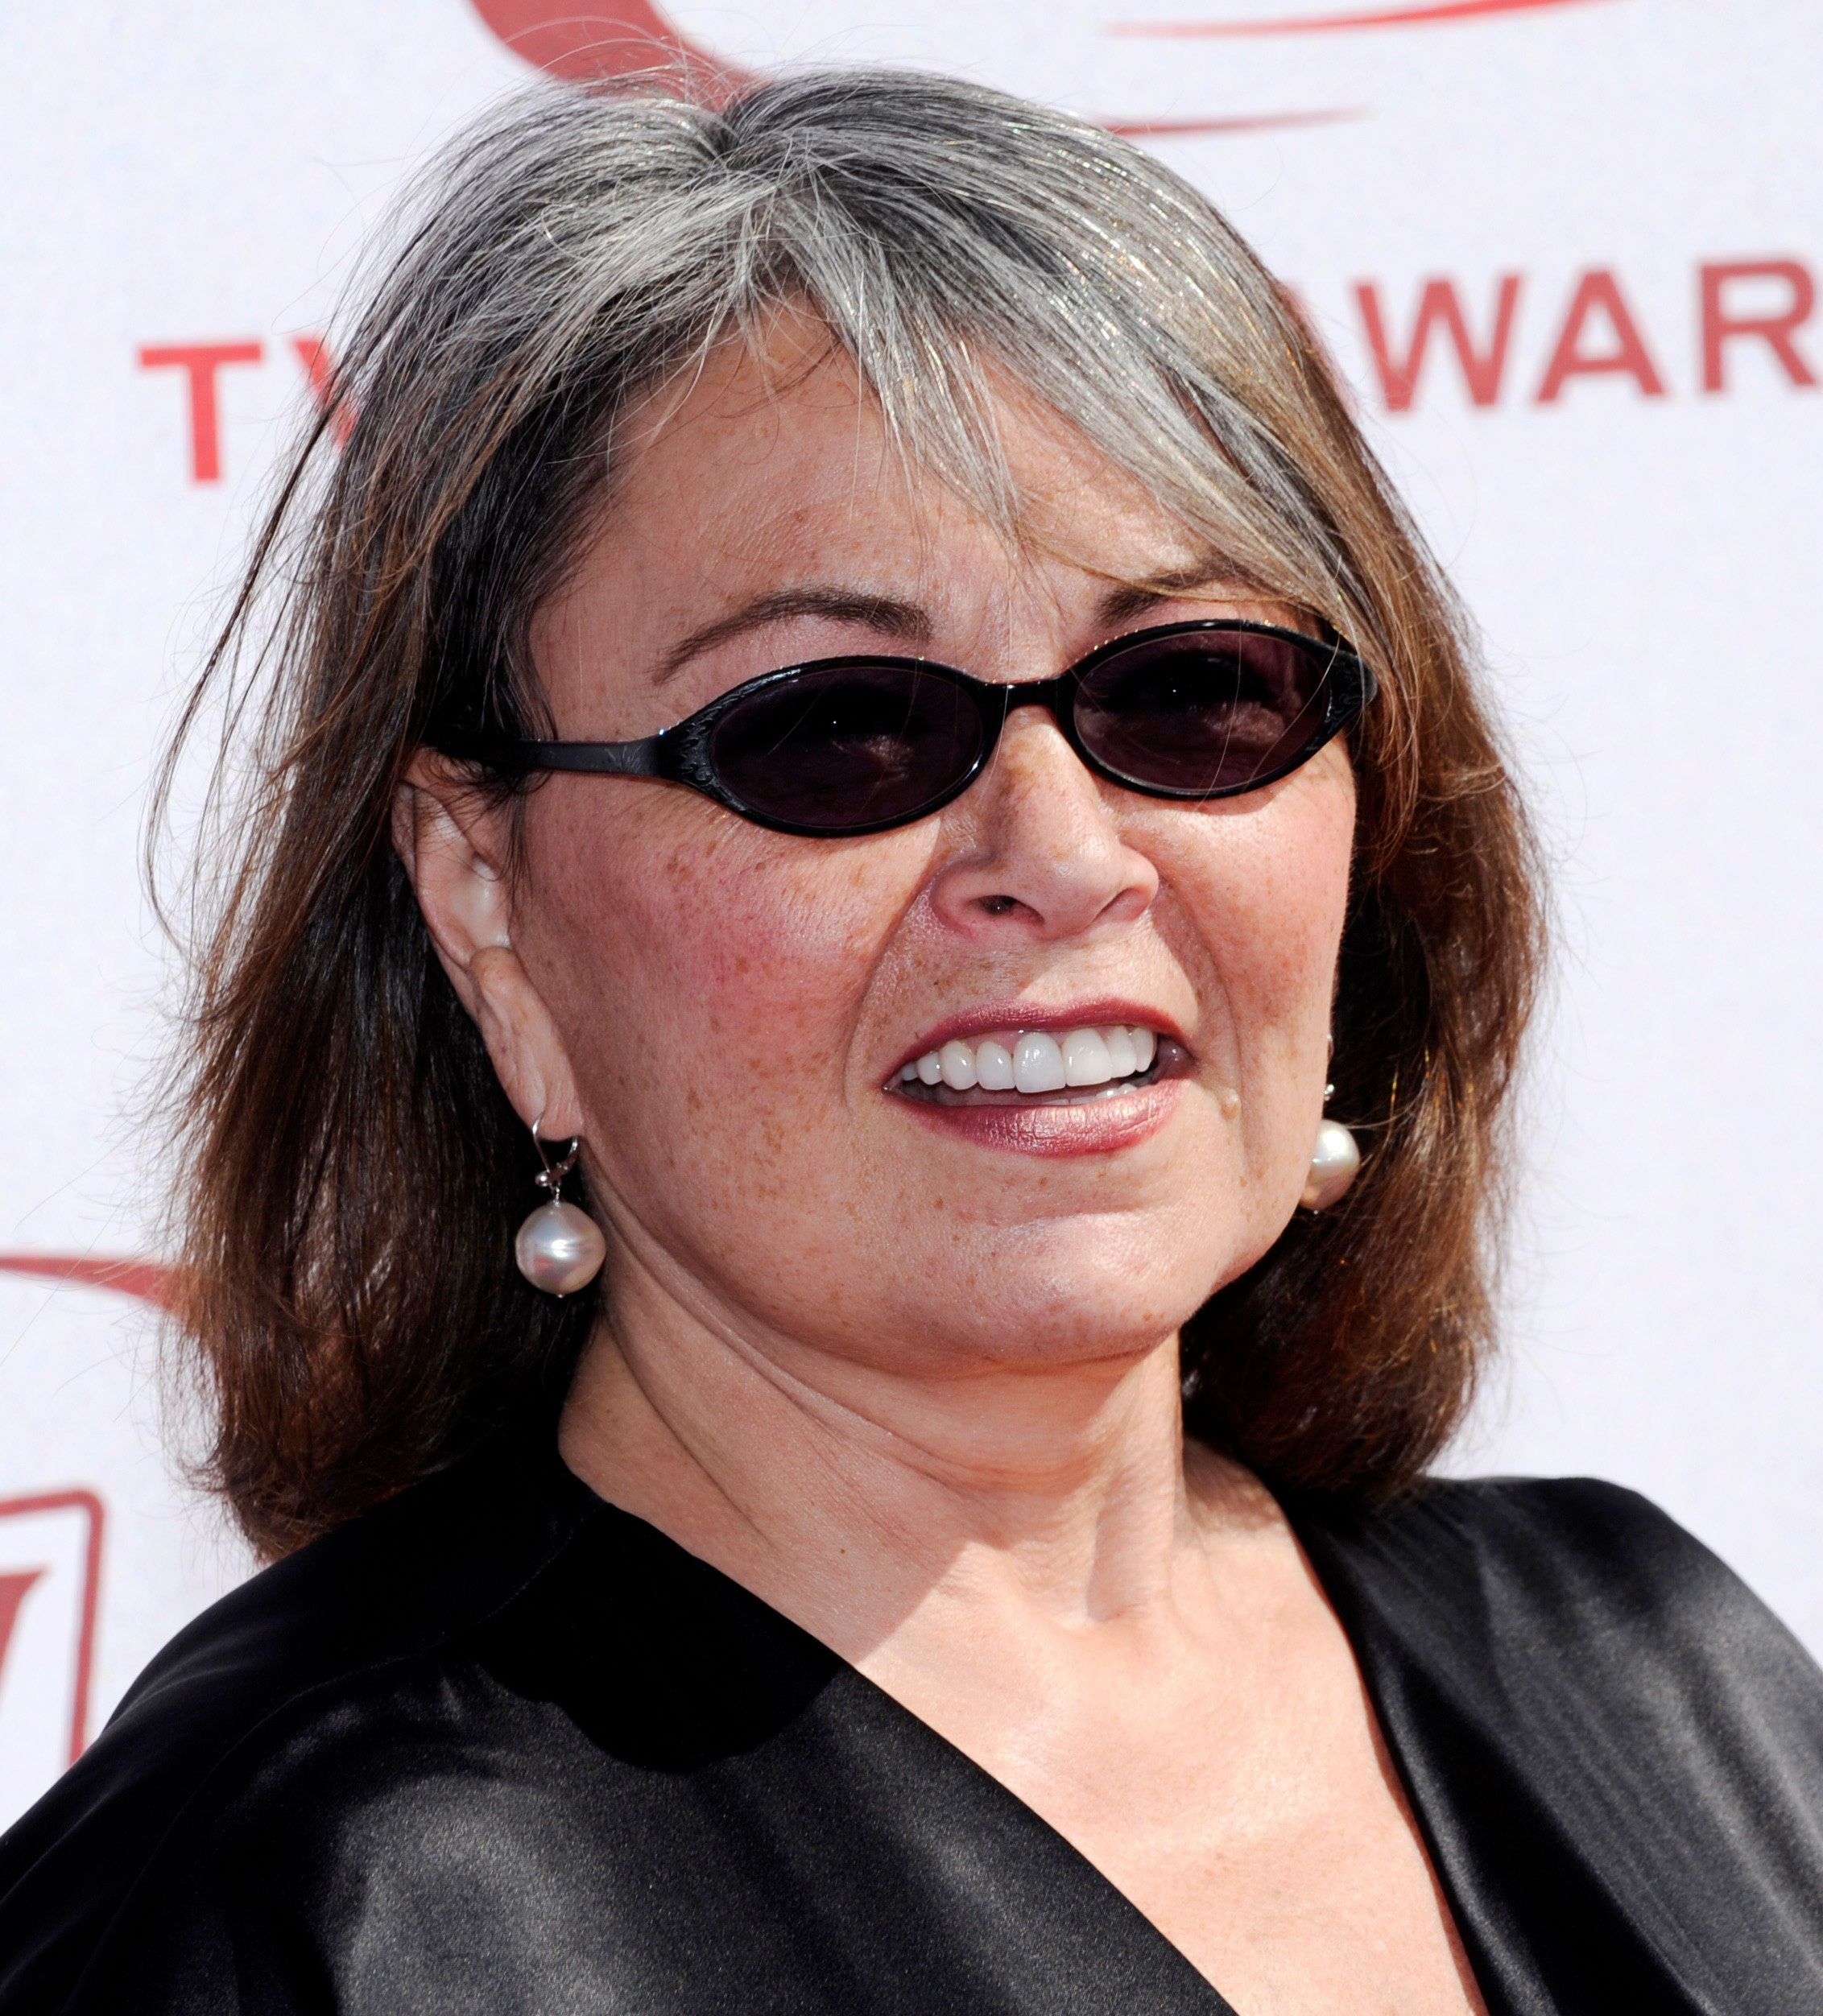 Actress Roseanne Barr arrives at the 6th Annual TV Land Awards in Santa Monica, California June 8, 2008. REUTERS/Chris Pizzello (UNITED STATES)